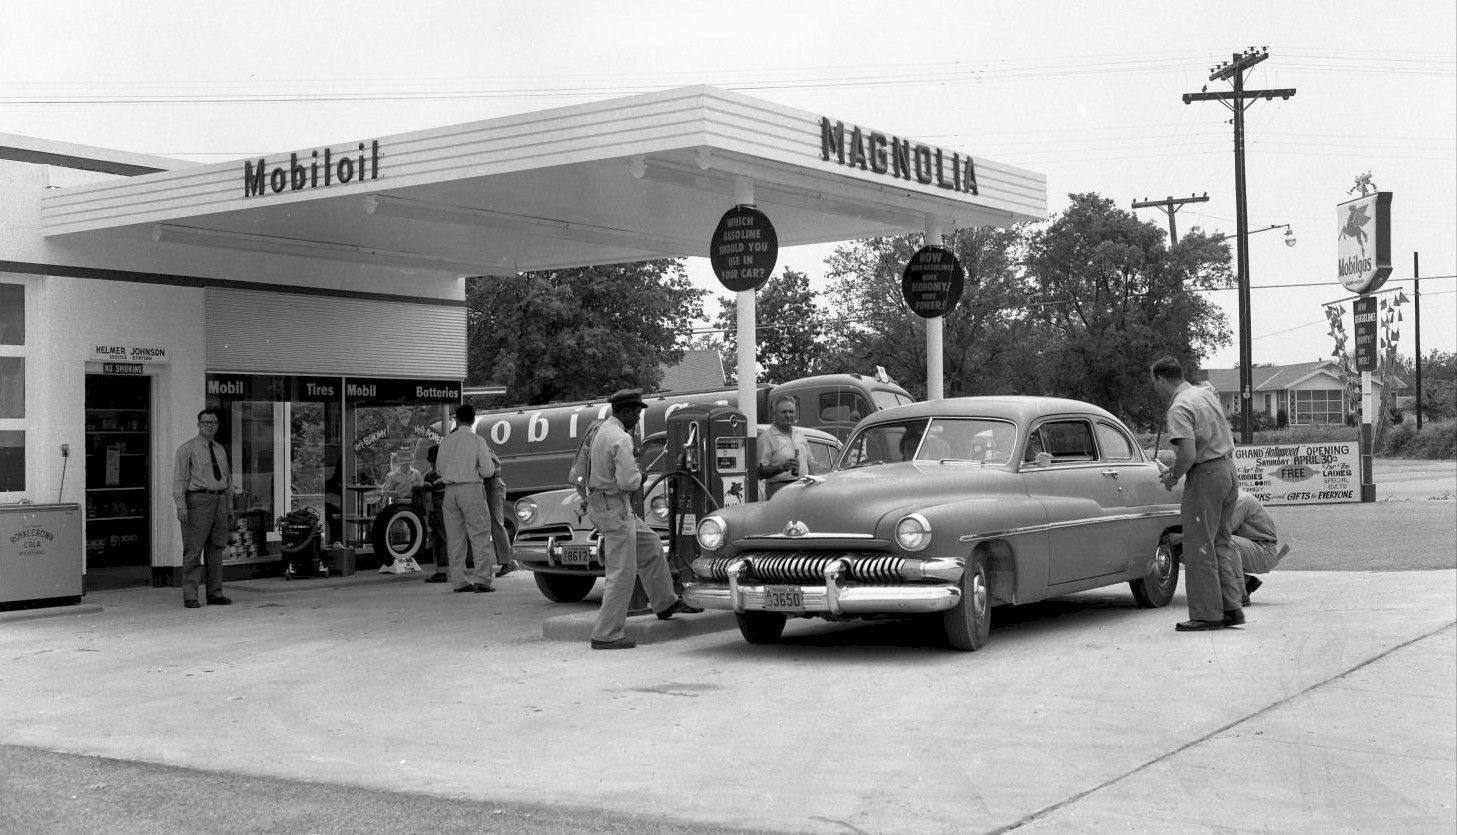 Magnolia Mobilgas 1955 Gas station, Old gas stations